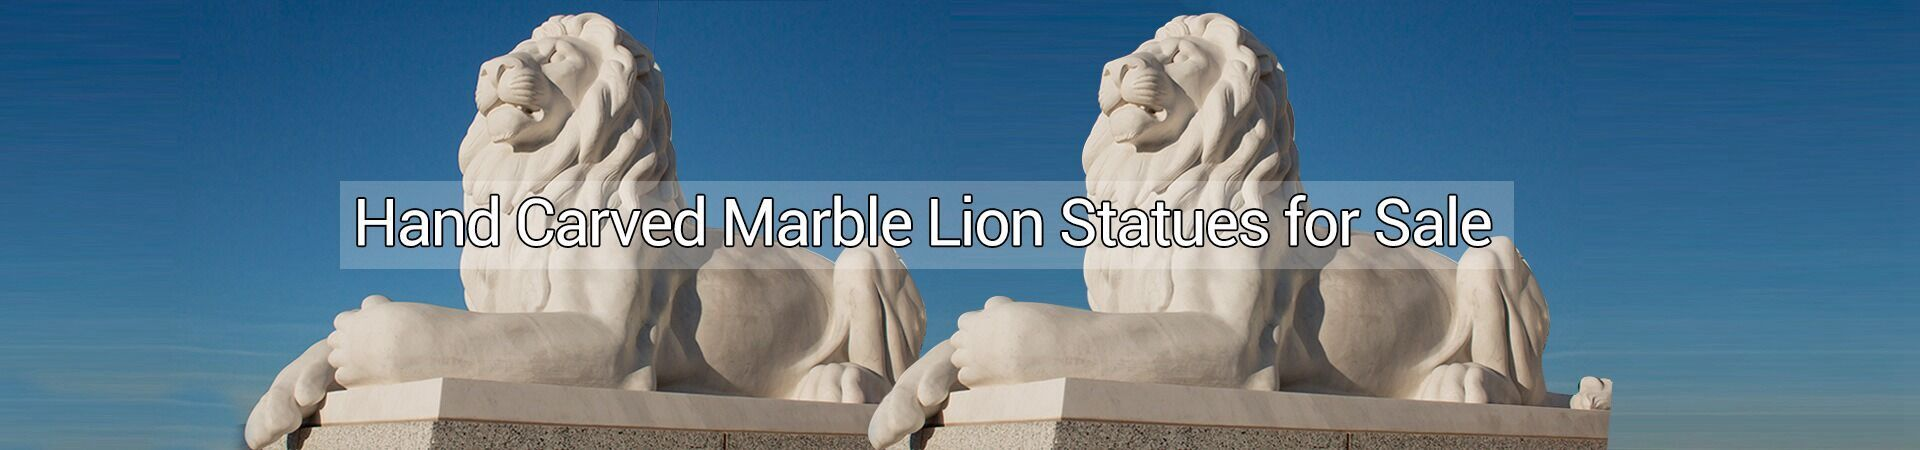 large guardian lion statue meaning marble lion at entrance India